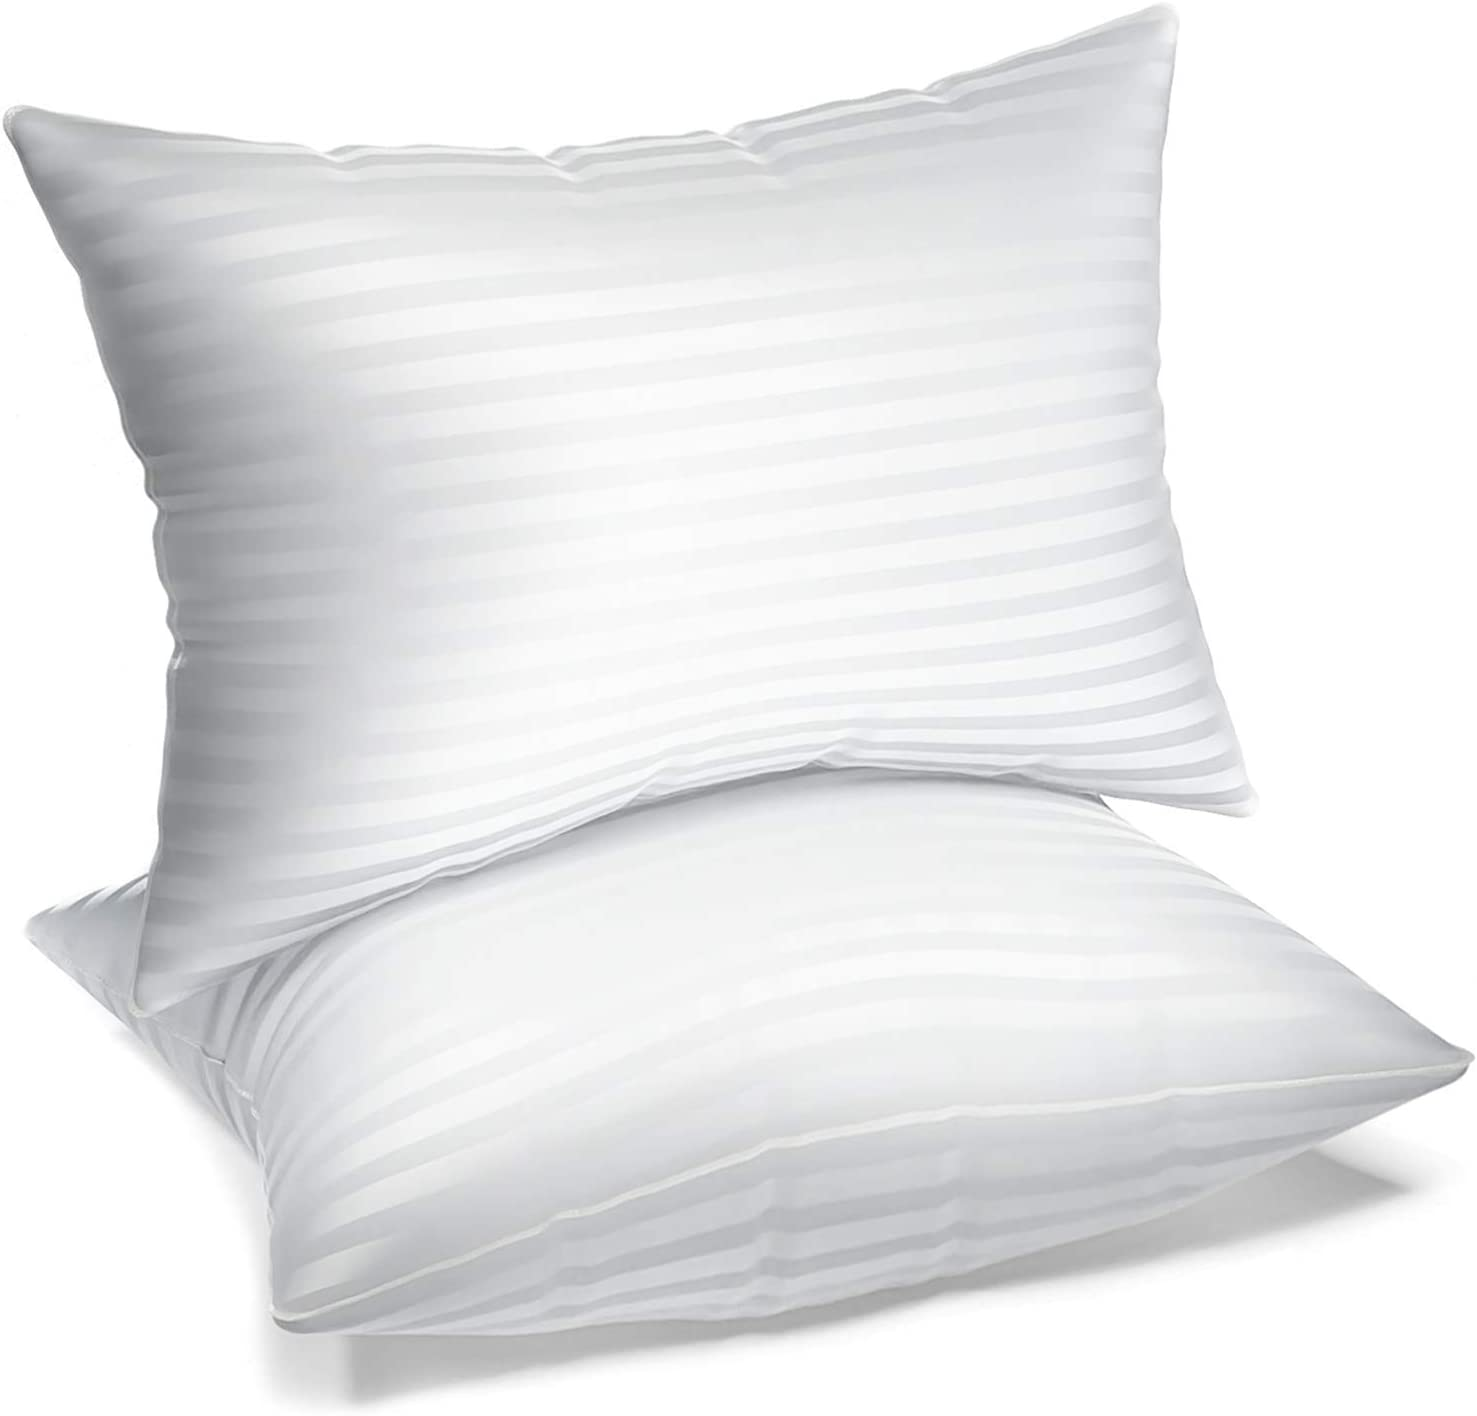 BROOKLUX Inexpensive Home Hotel Collection Gel Sleeping Pillows Gorgeous Set for -